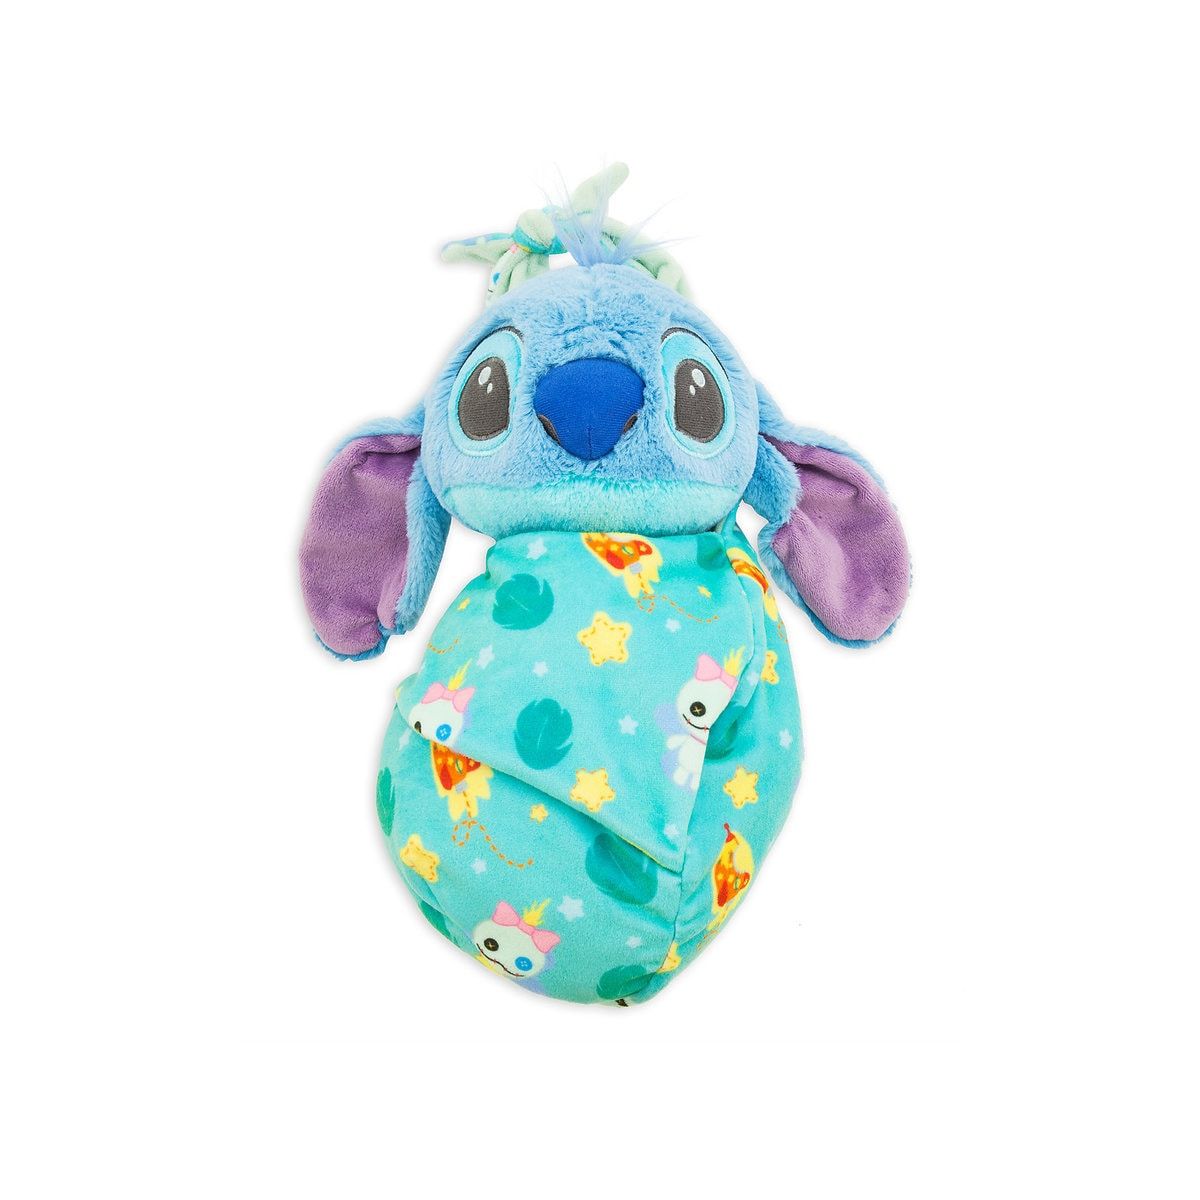 3948245ce37 Product Image of Stitch Plush in Pouch - Disney Babies - Small   1